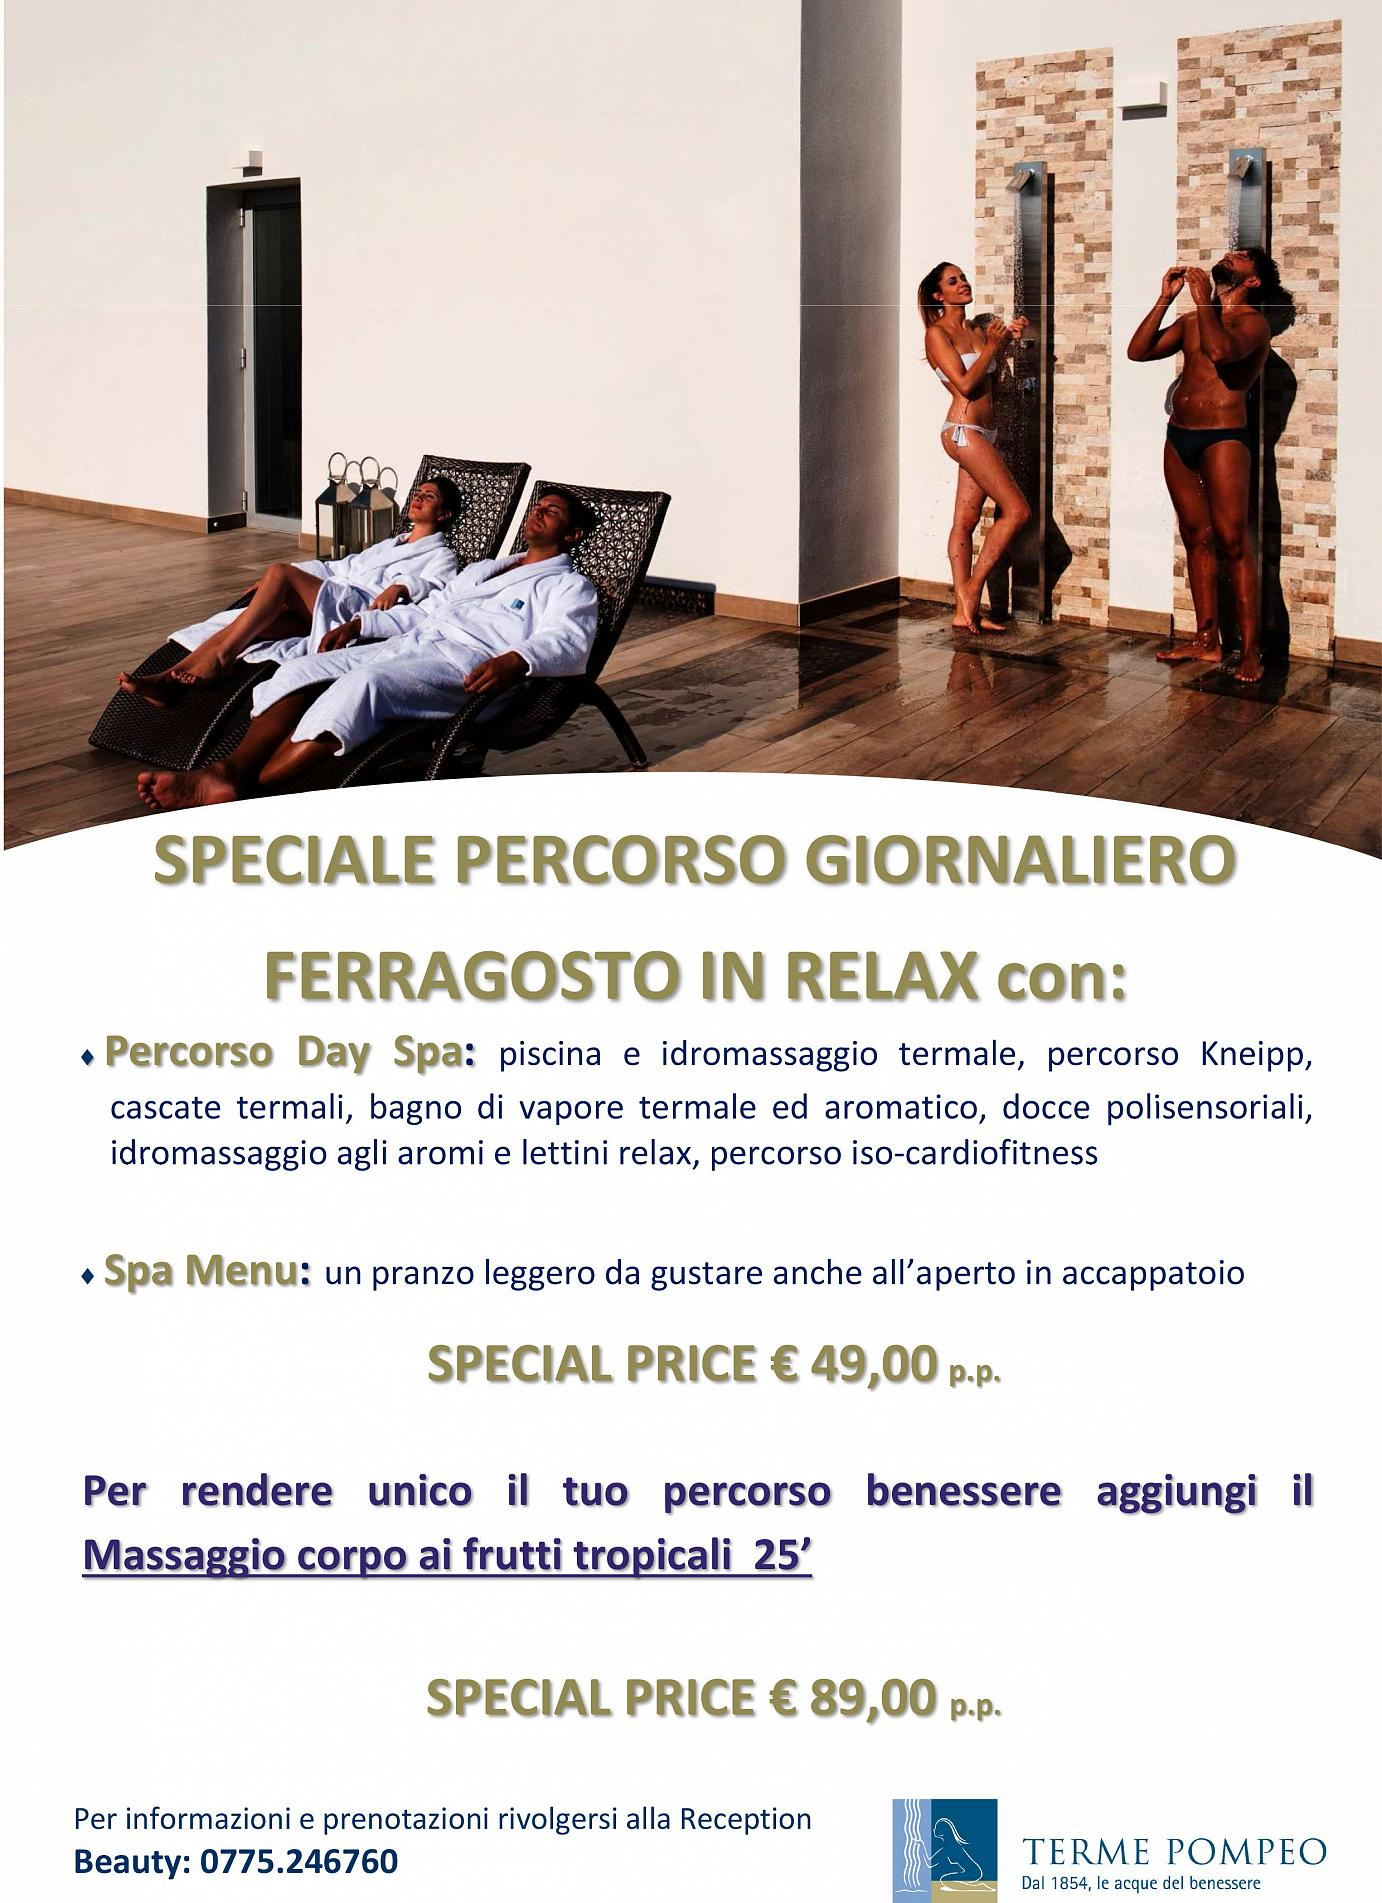 Day Spa Ferragosto Wellness Relax 2019